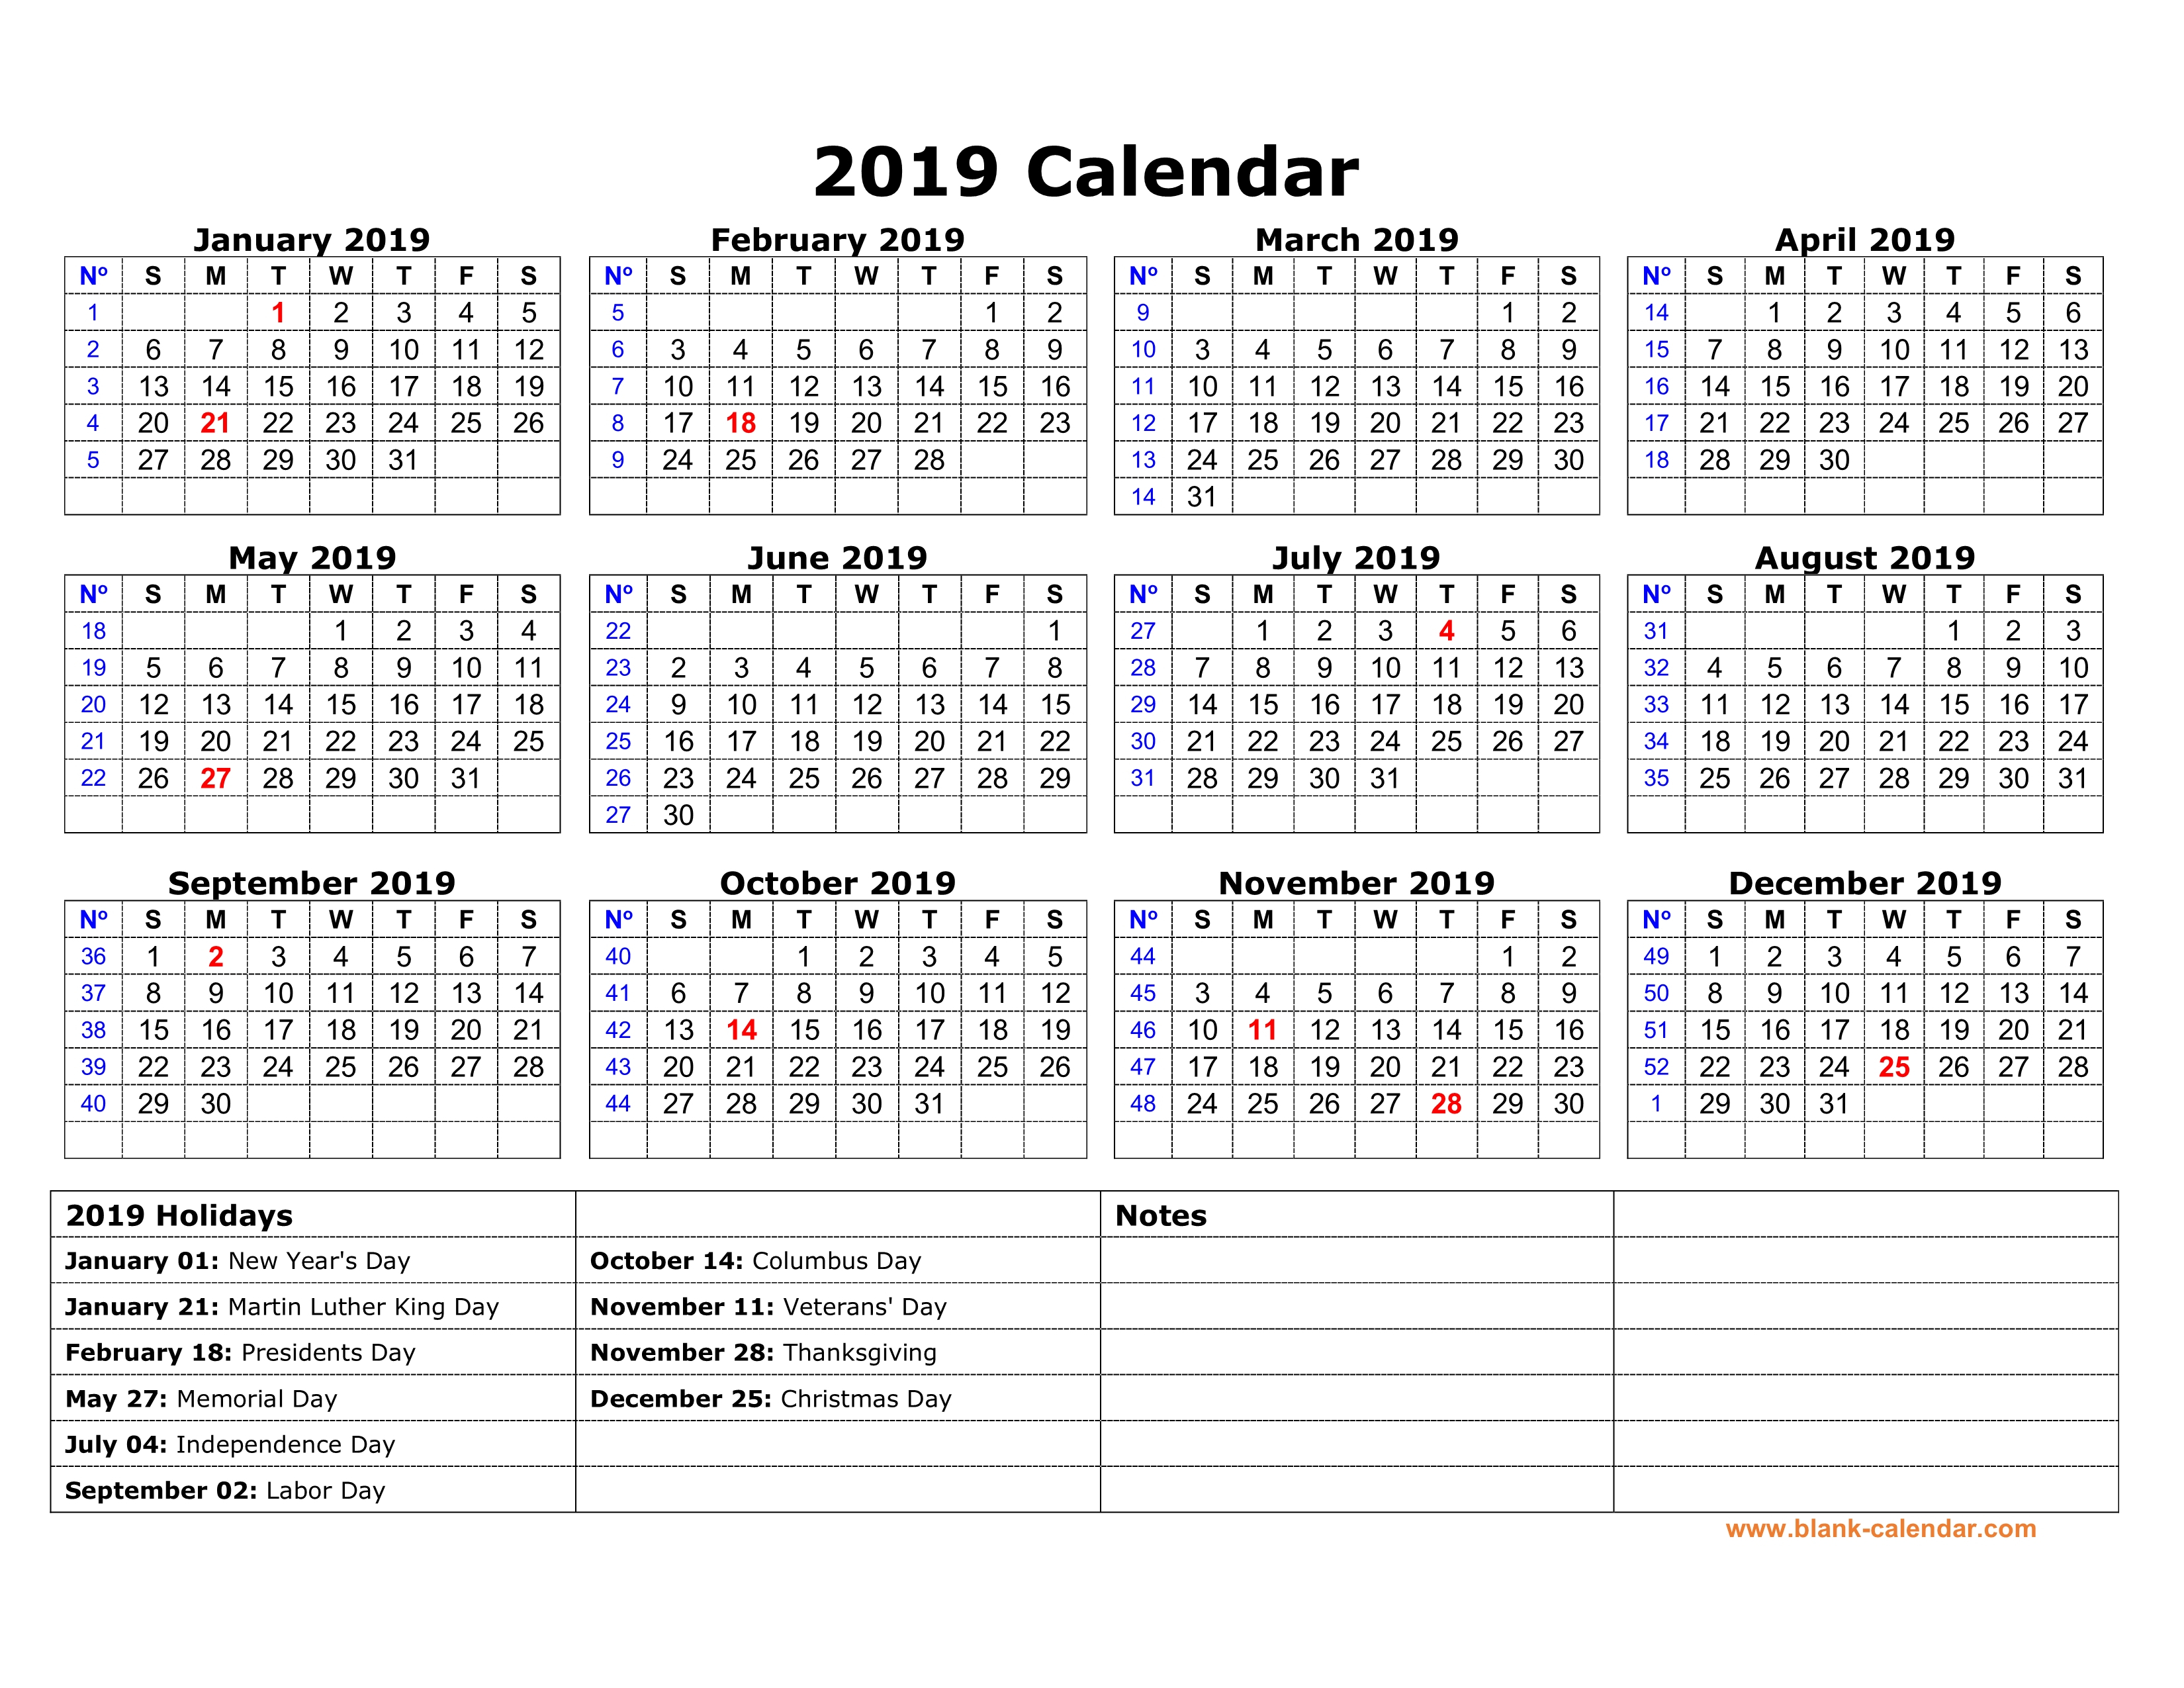 Free Download Printable Calendar 2019 With Us Federal Holidays, One for 1 Page Calendar 2019-2020 With Major Holidays